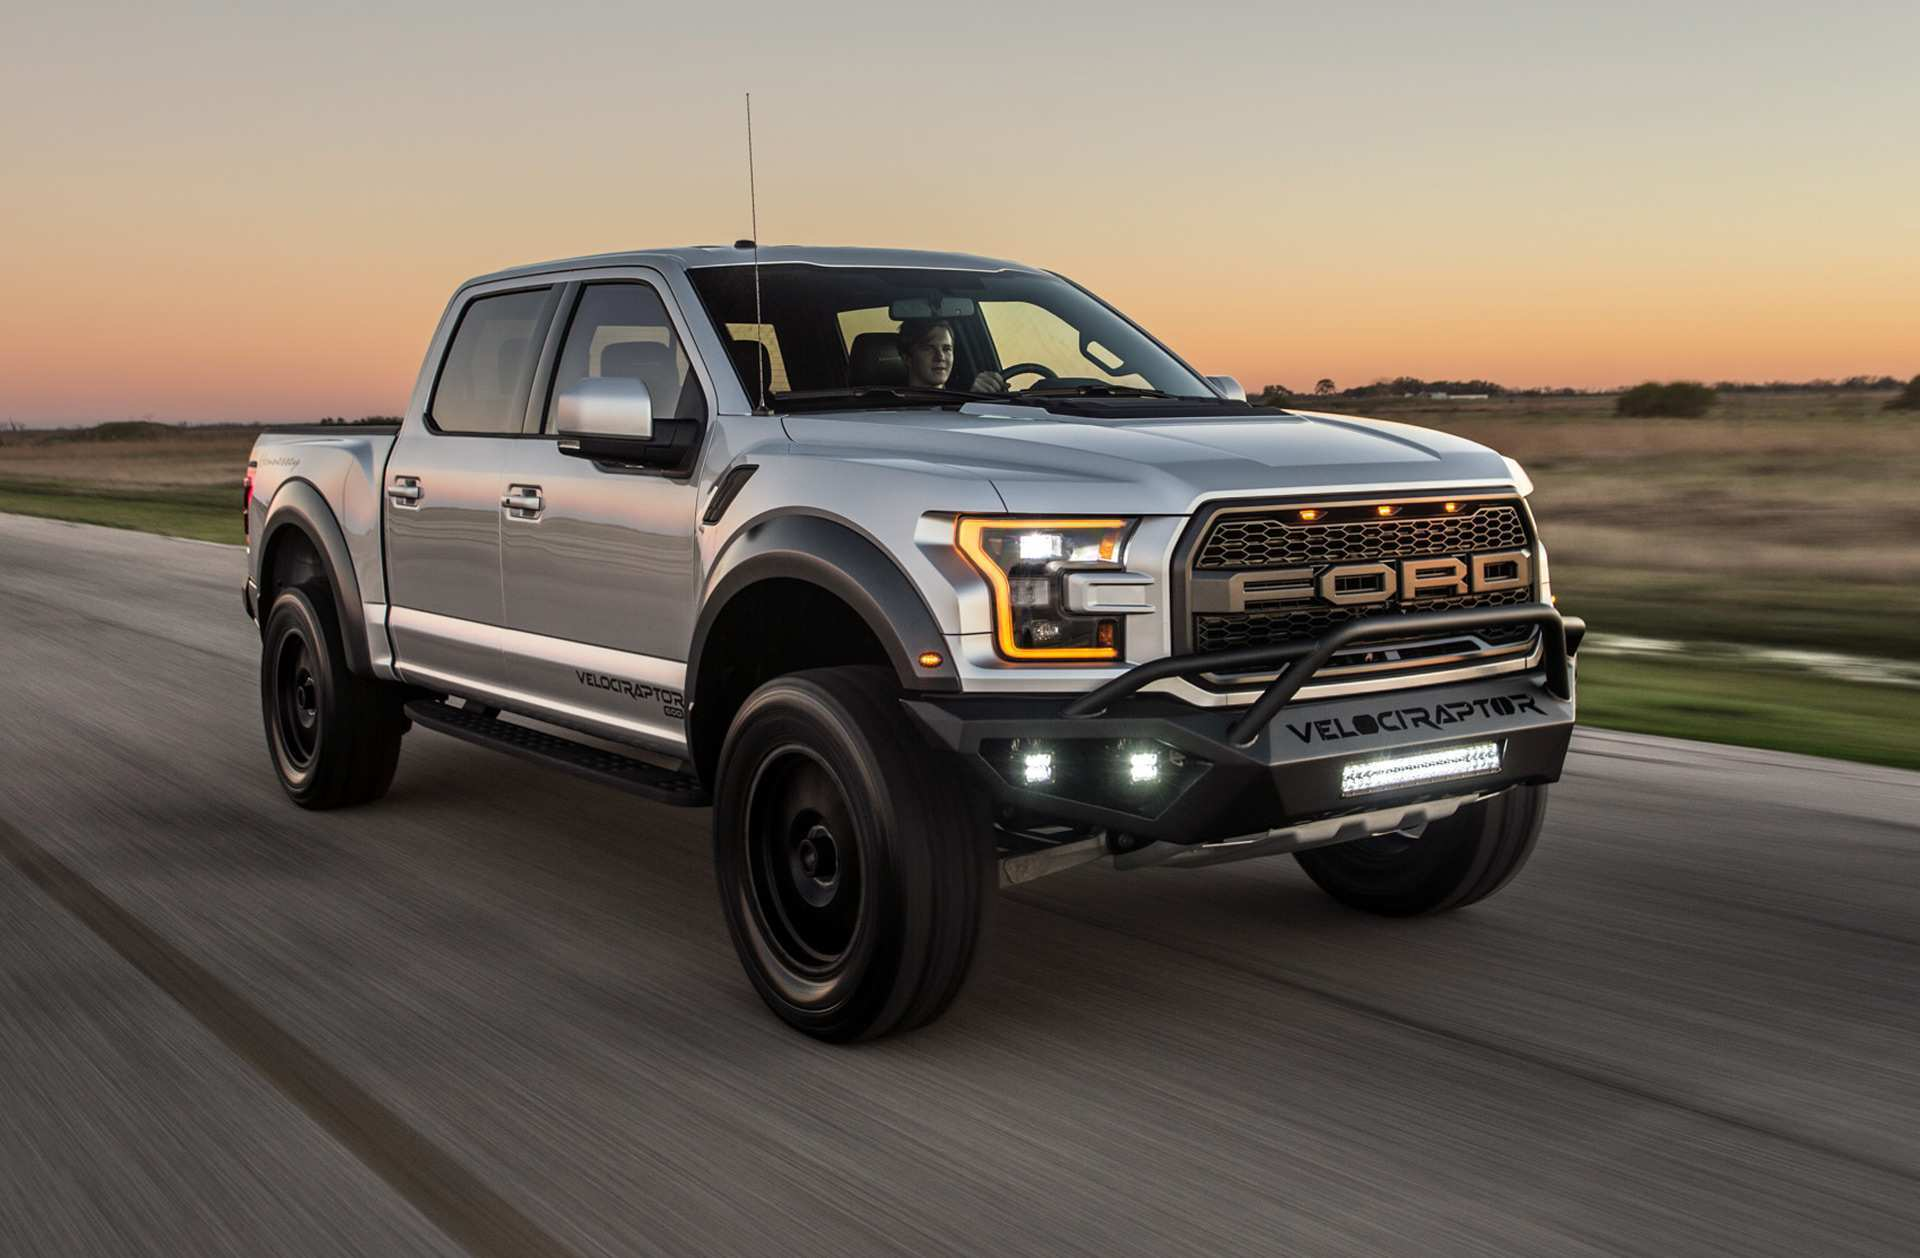 92 Great 2019 Ford Raptor Redesign and Concept with 2019 Ford Raptor